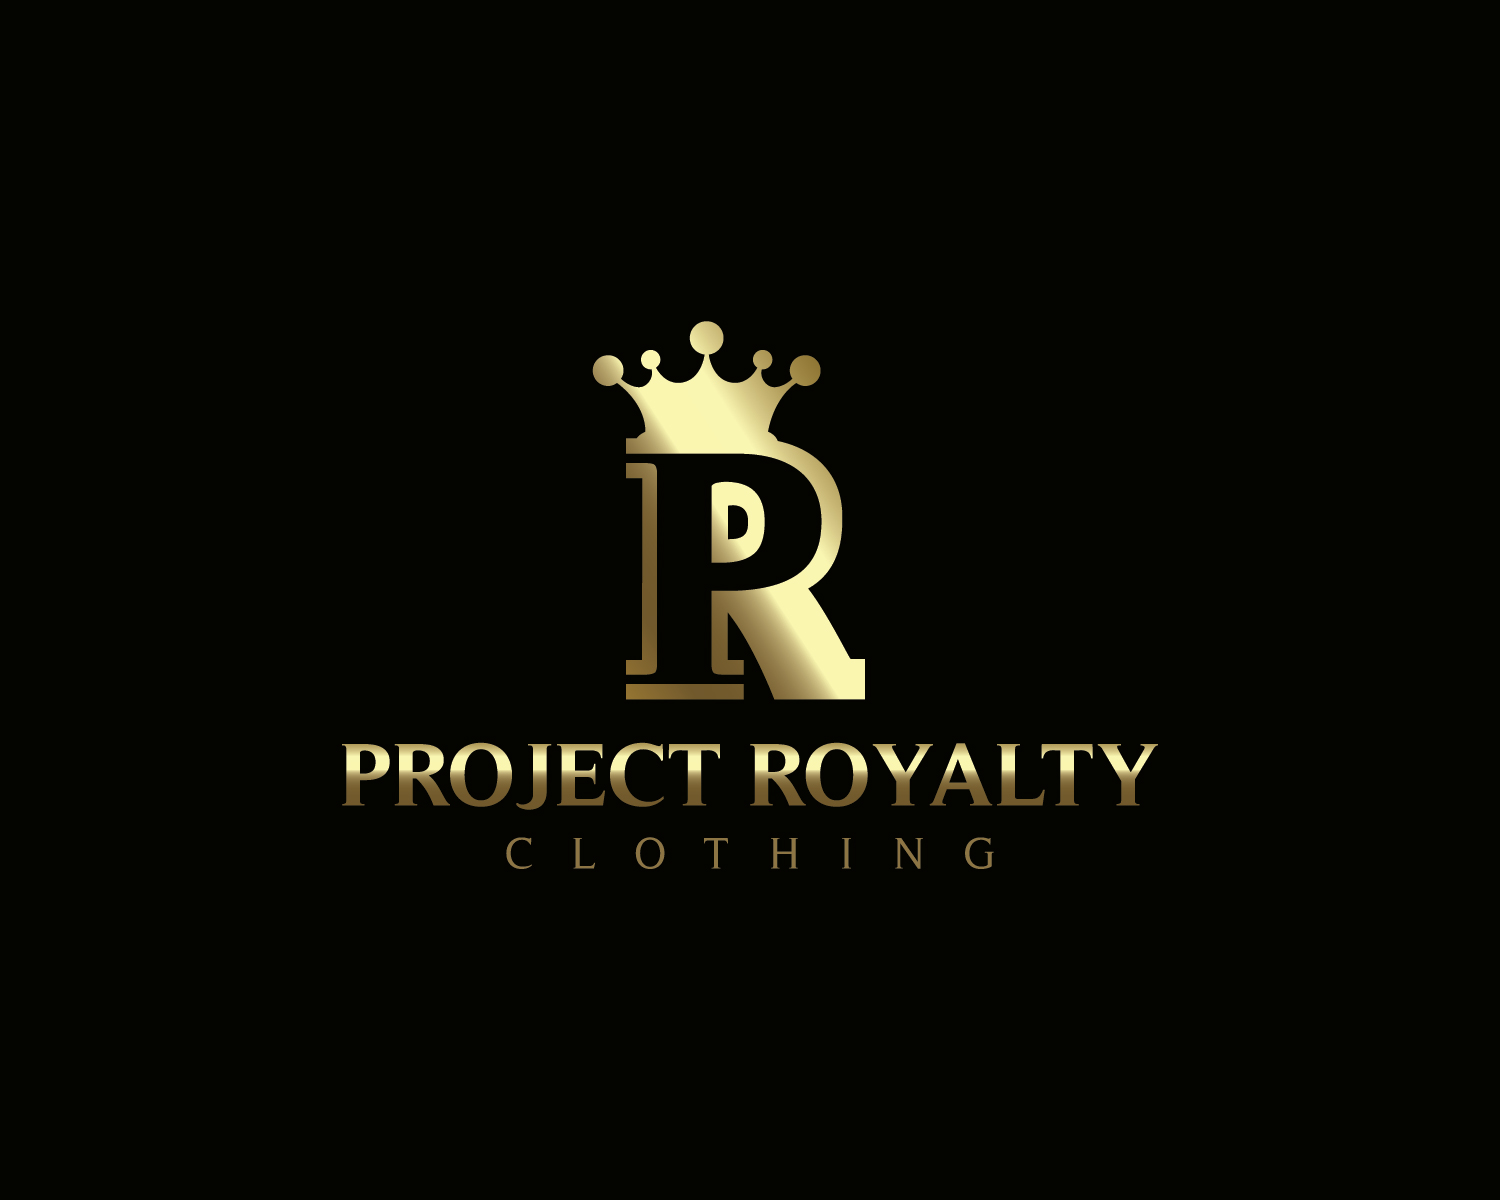 Project Royalty Clothing